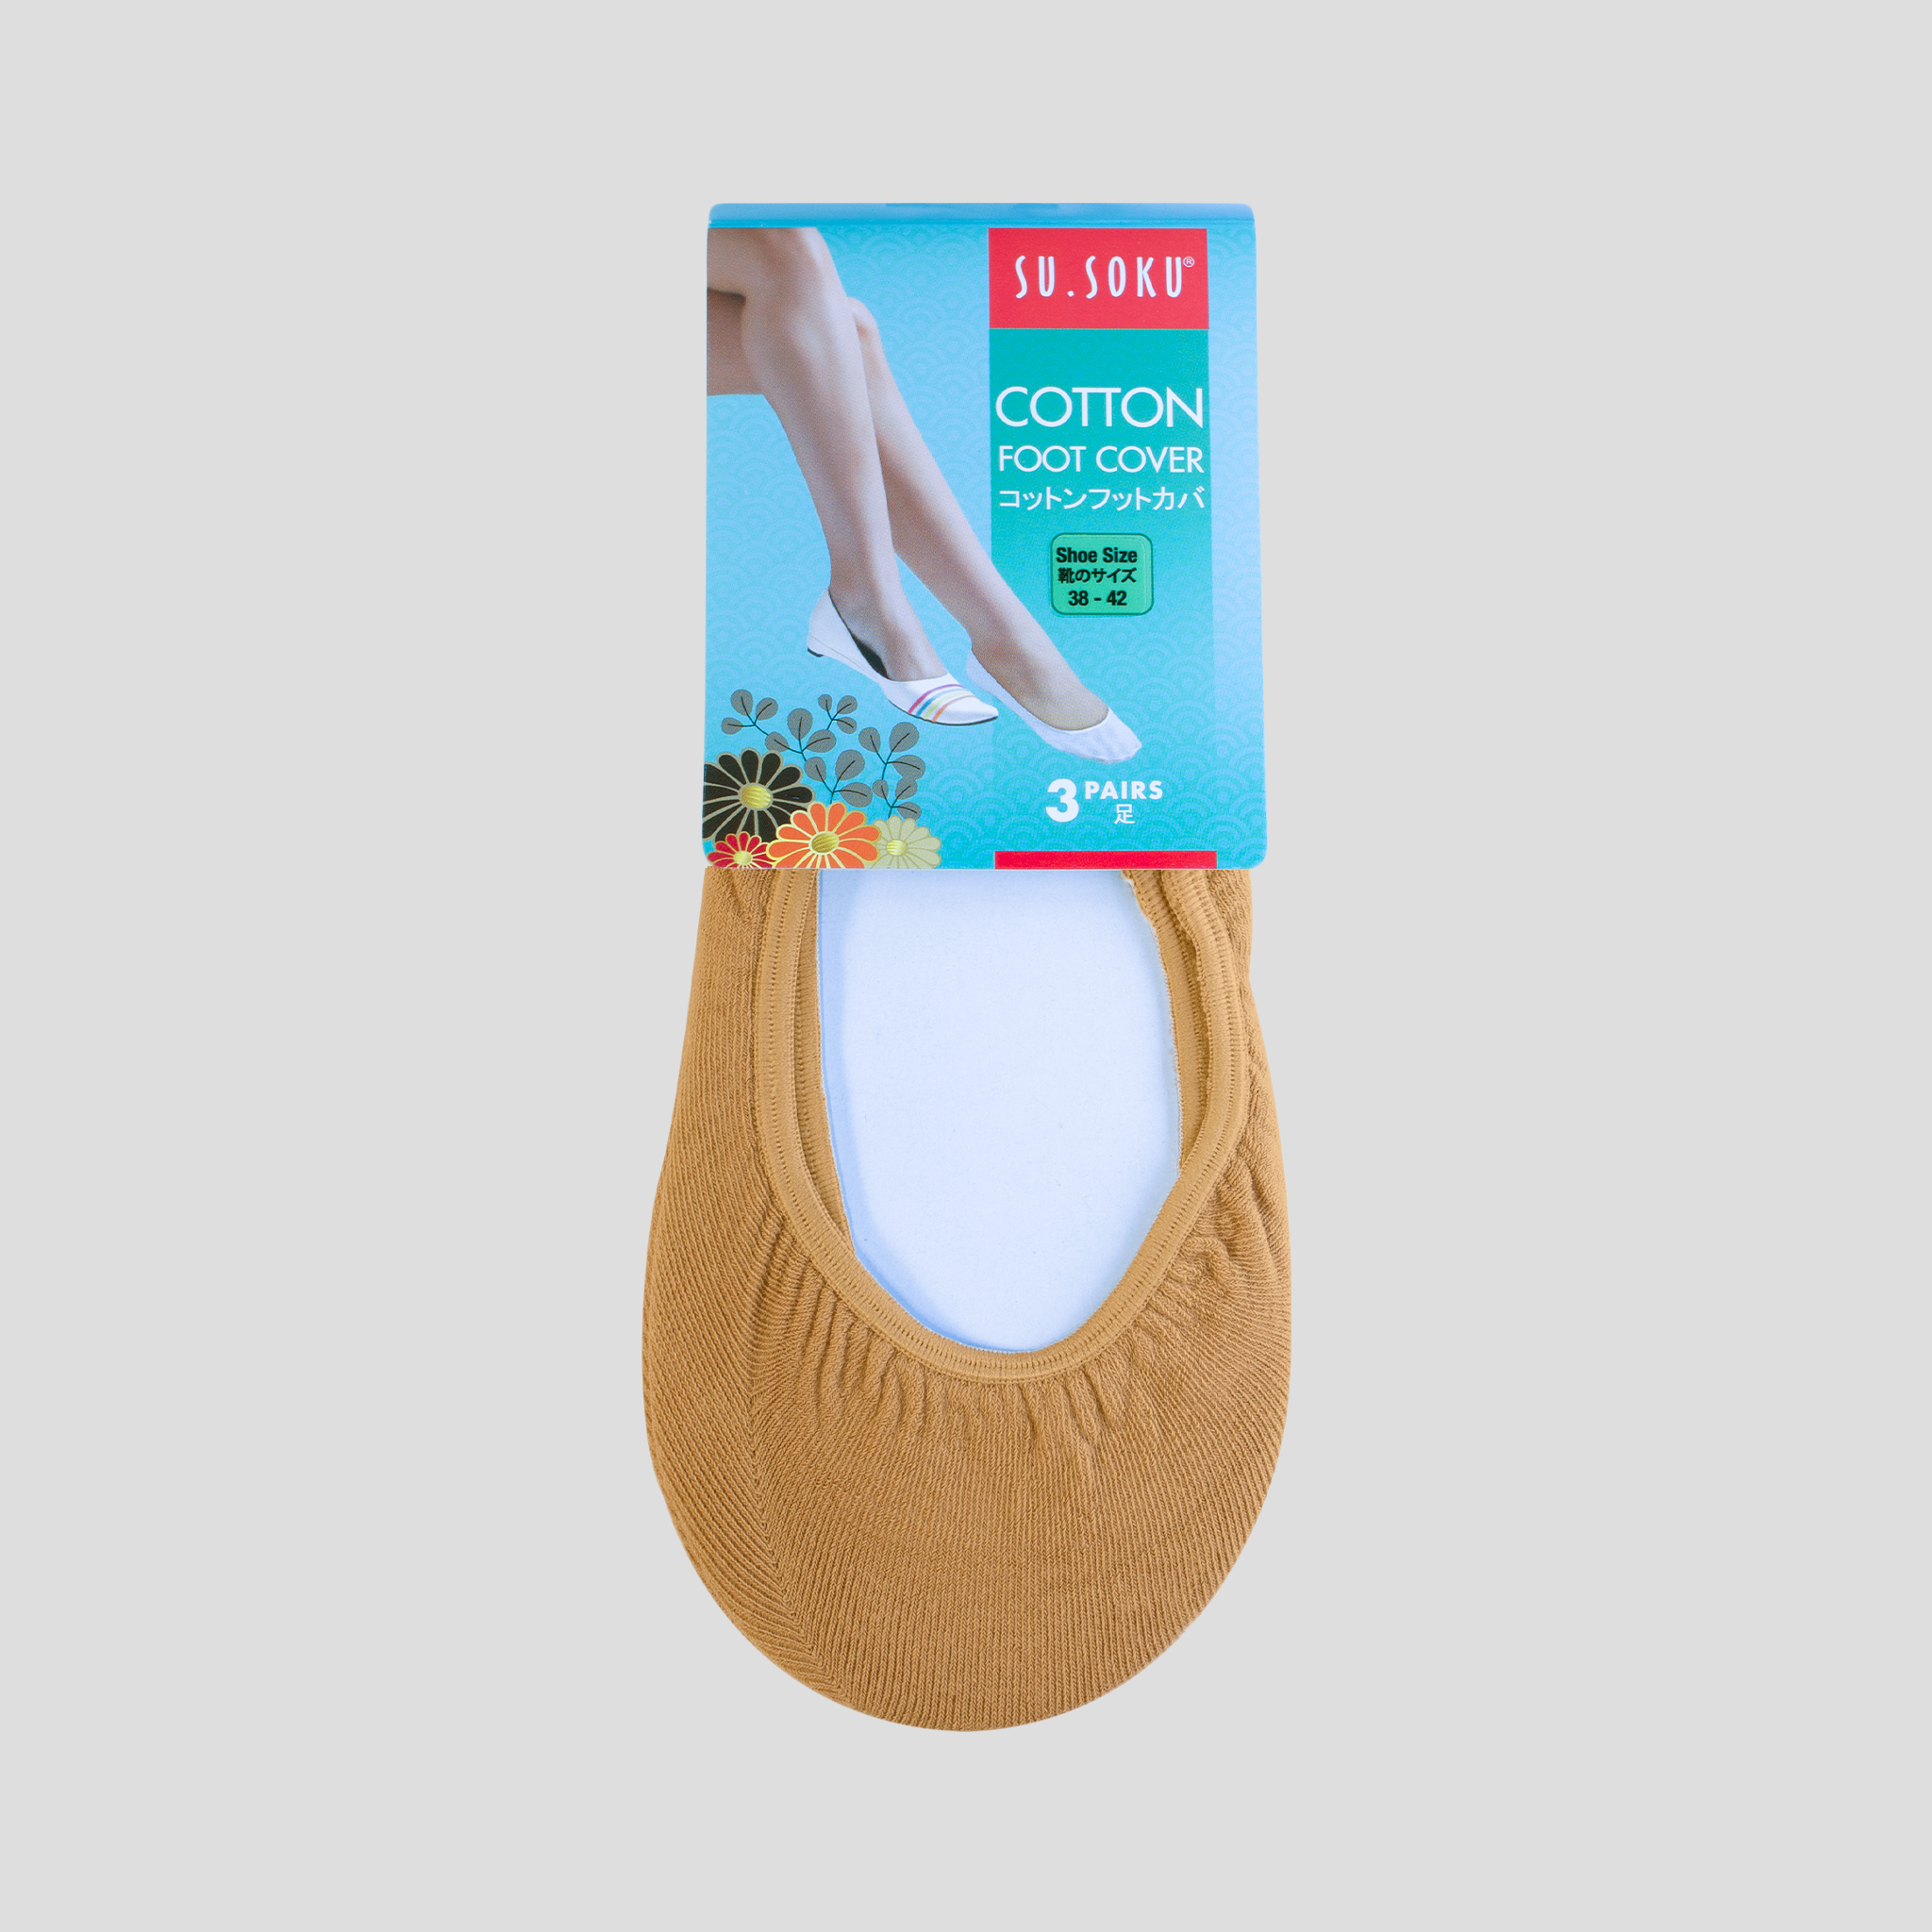 cotton foot cover packaging